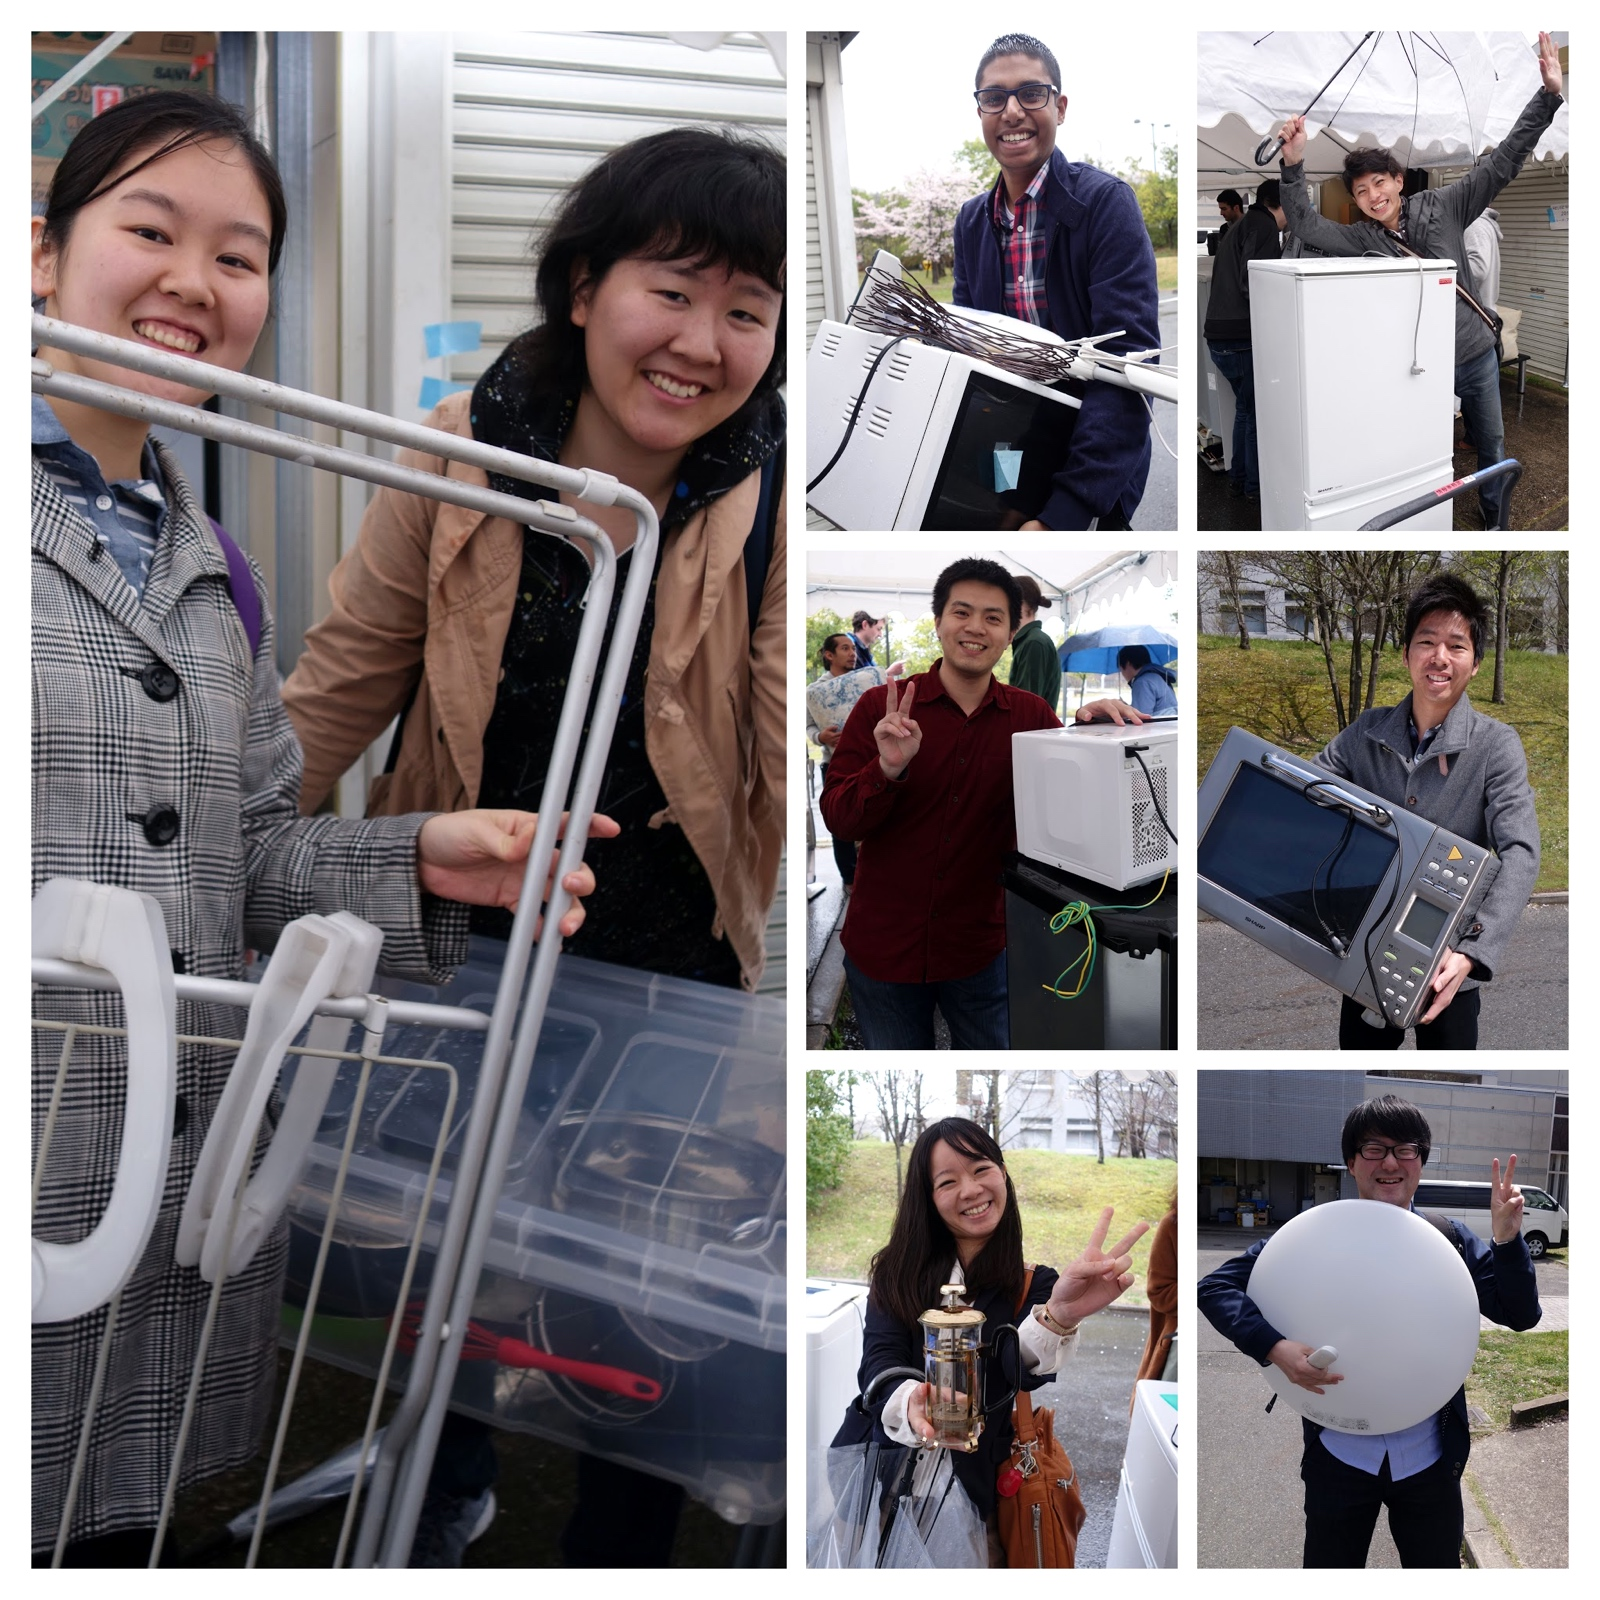 A small number of the happy people receiving items at the Reuse Market.